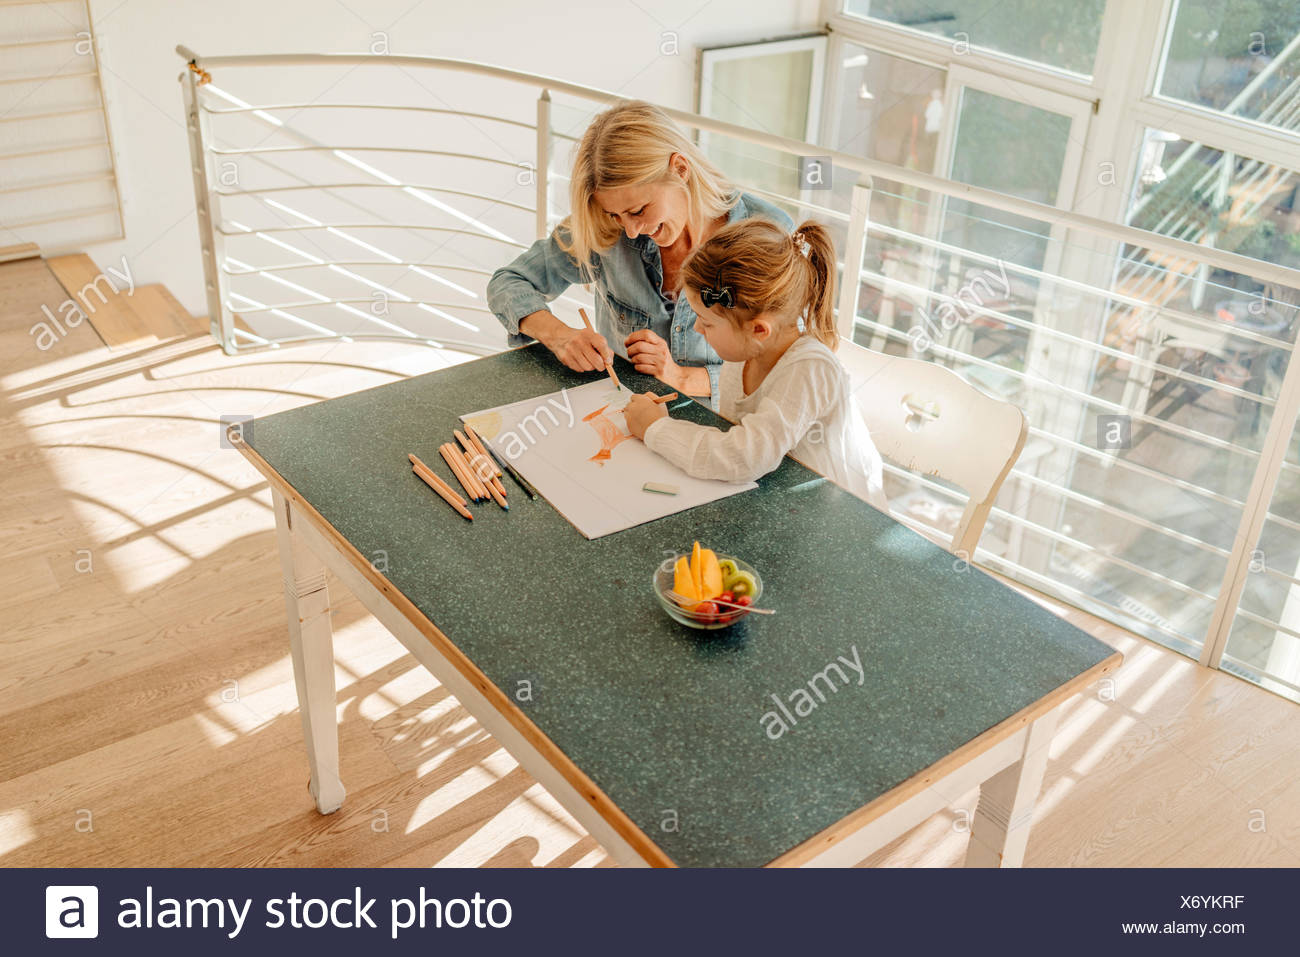 Mature woman and girl at home drawing together - Stock Image